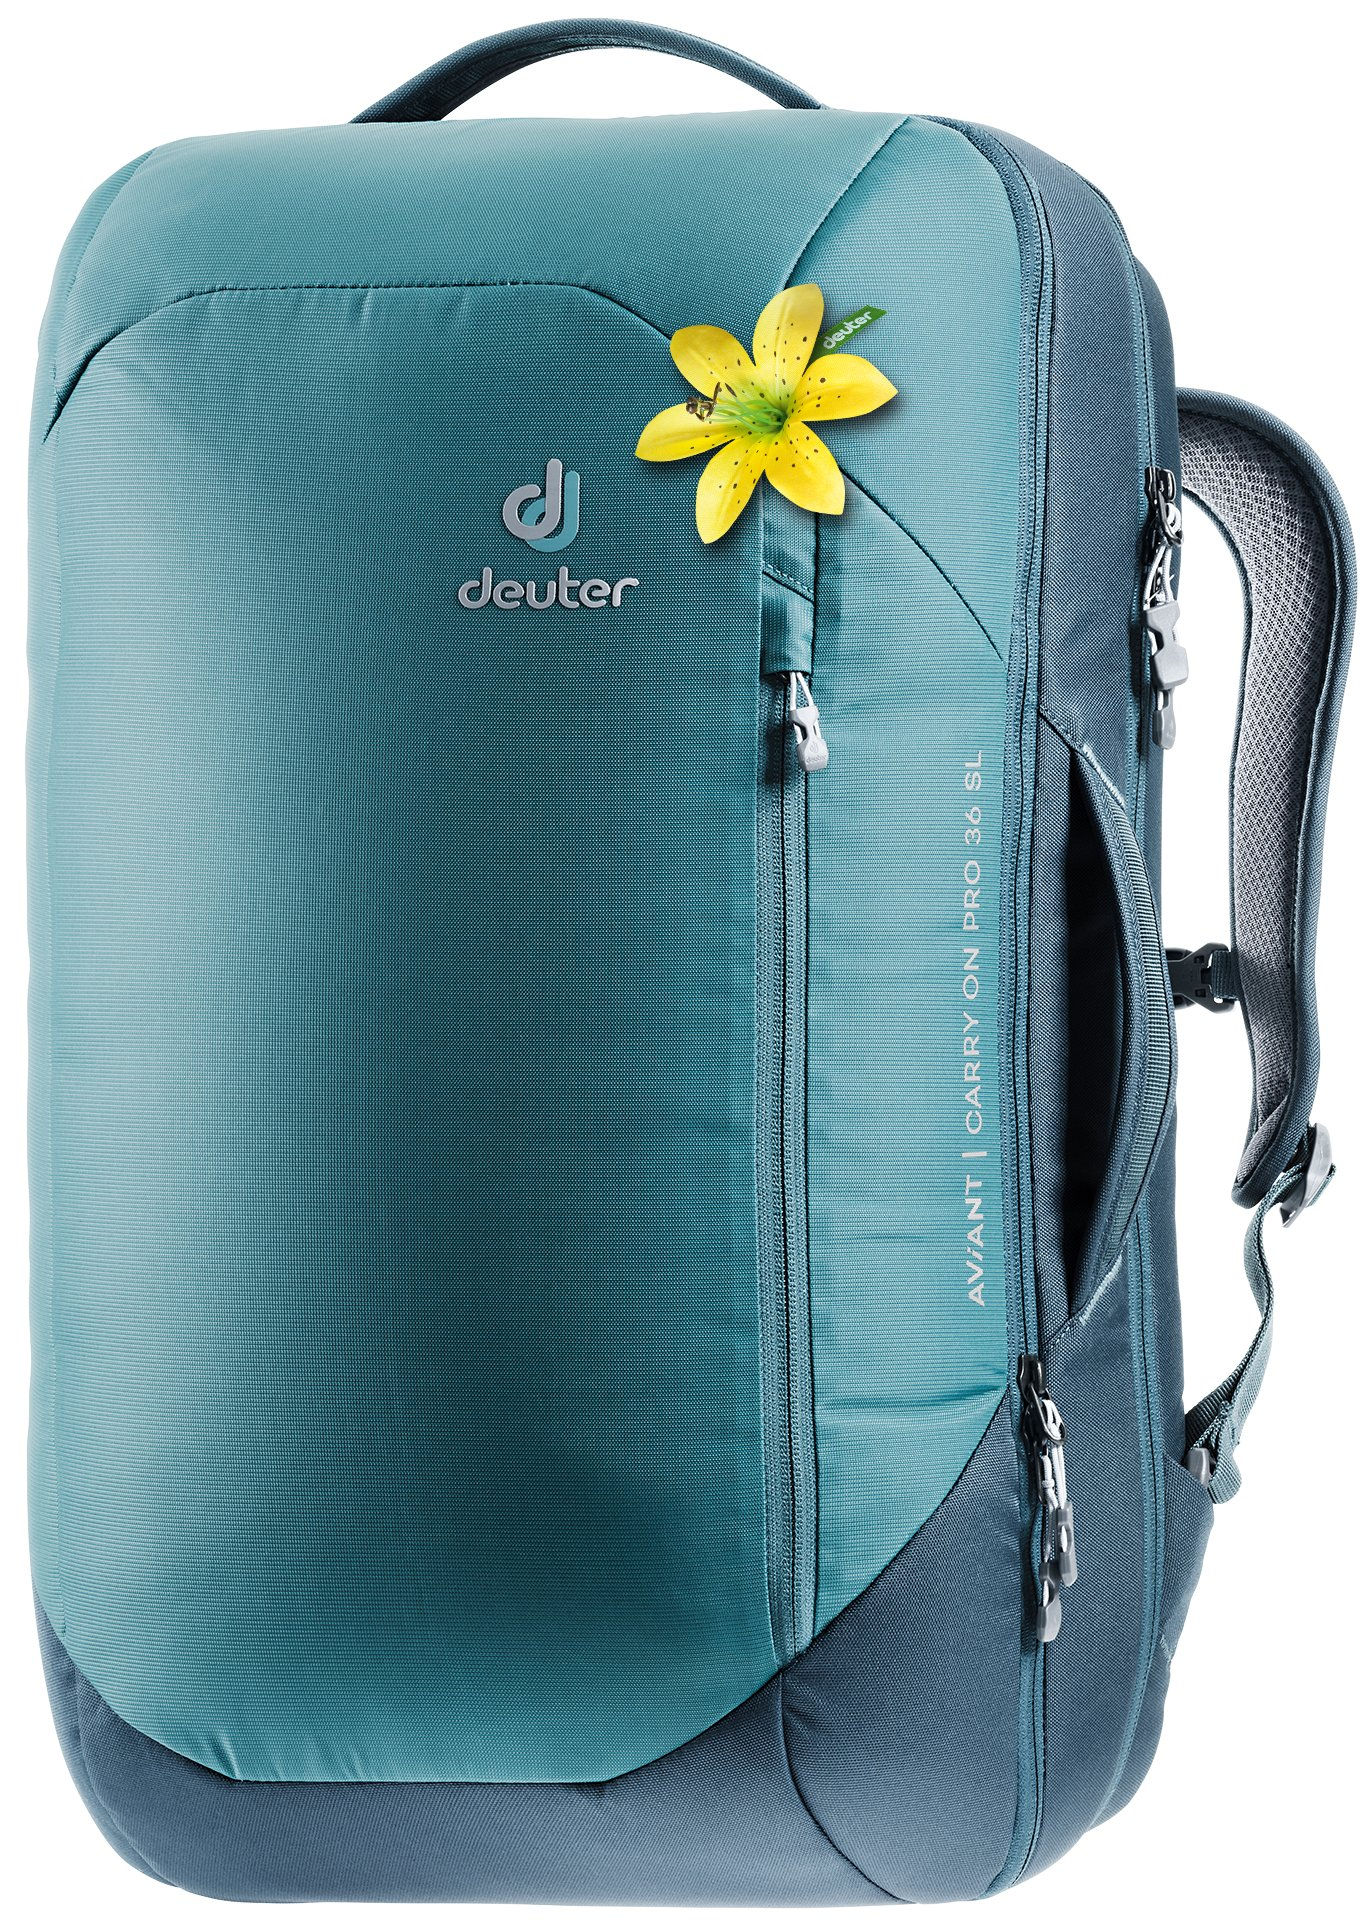 Deuter - AViANT Carry On Pro 36 SL, Reiserucksack